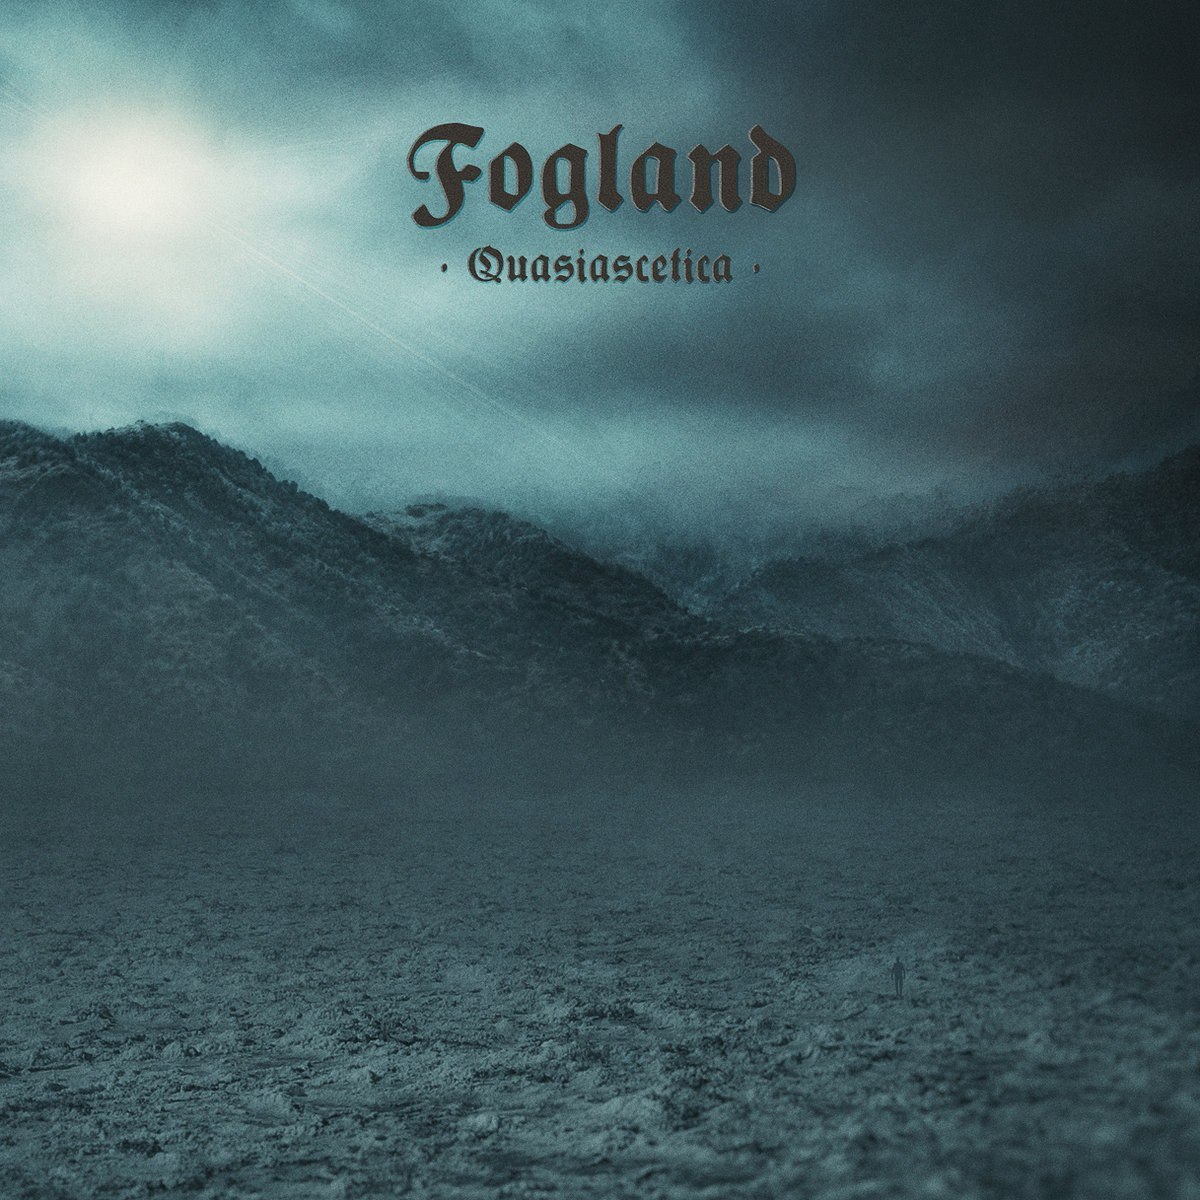 Review for Fogland - Quasiascetica